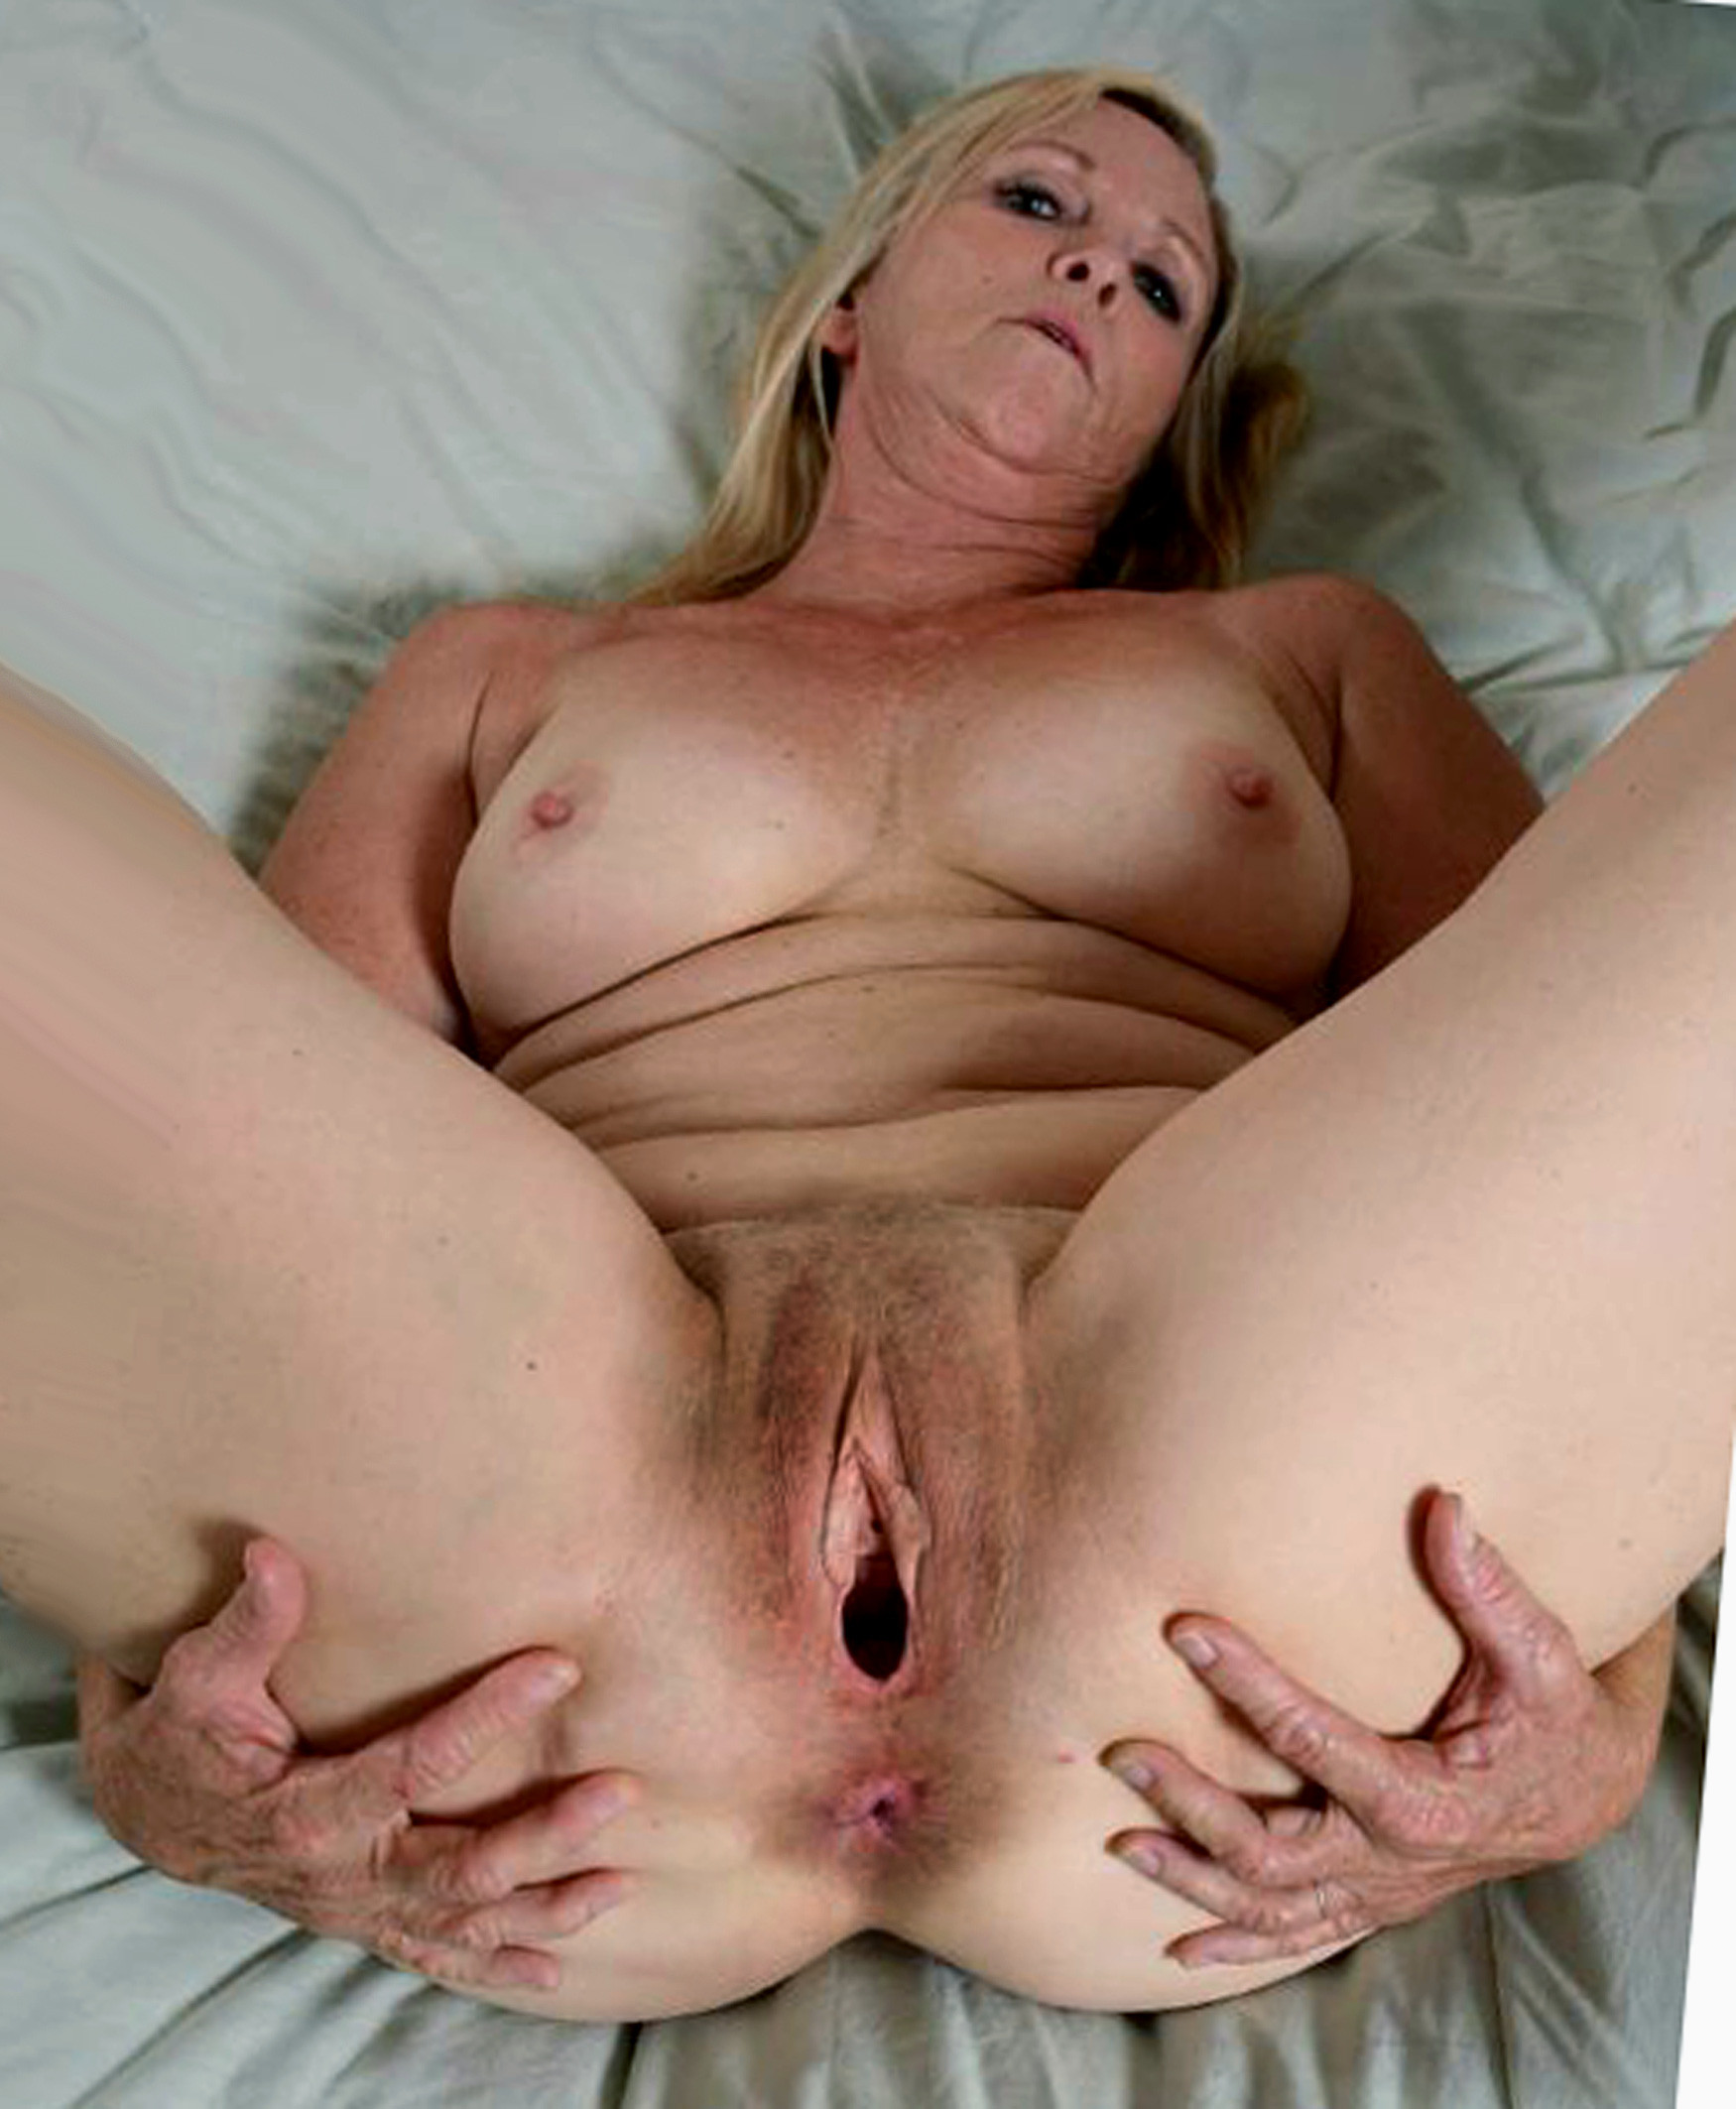 Vagina naked mother, horney college girl party slut load